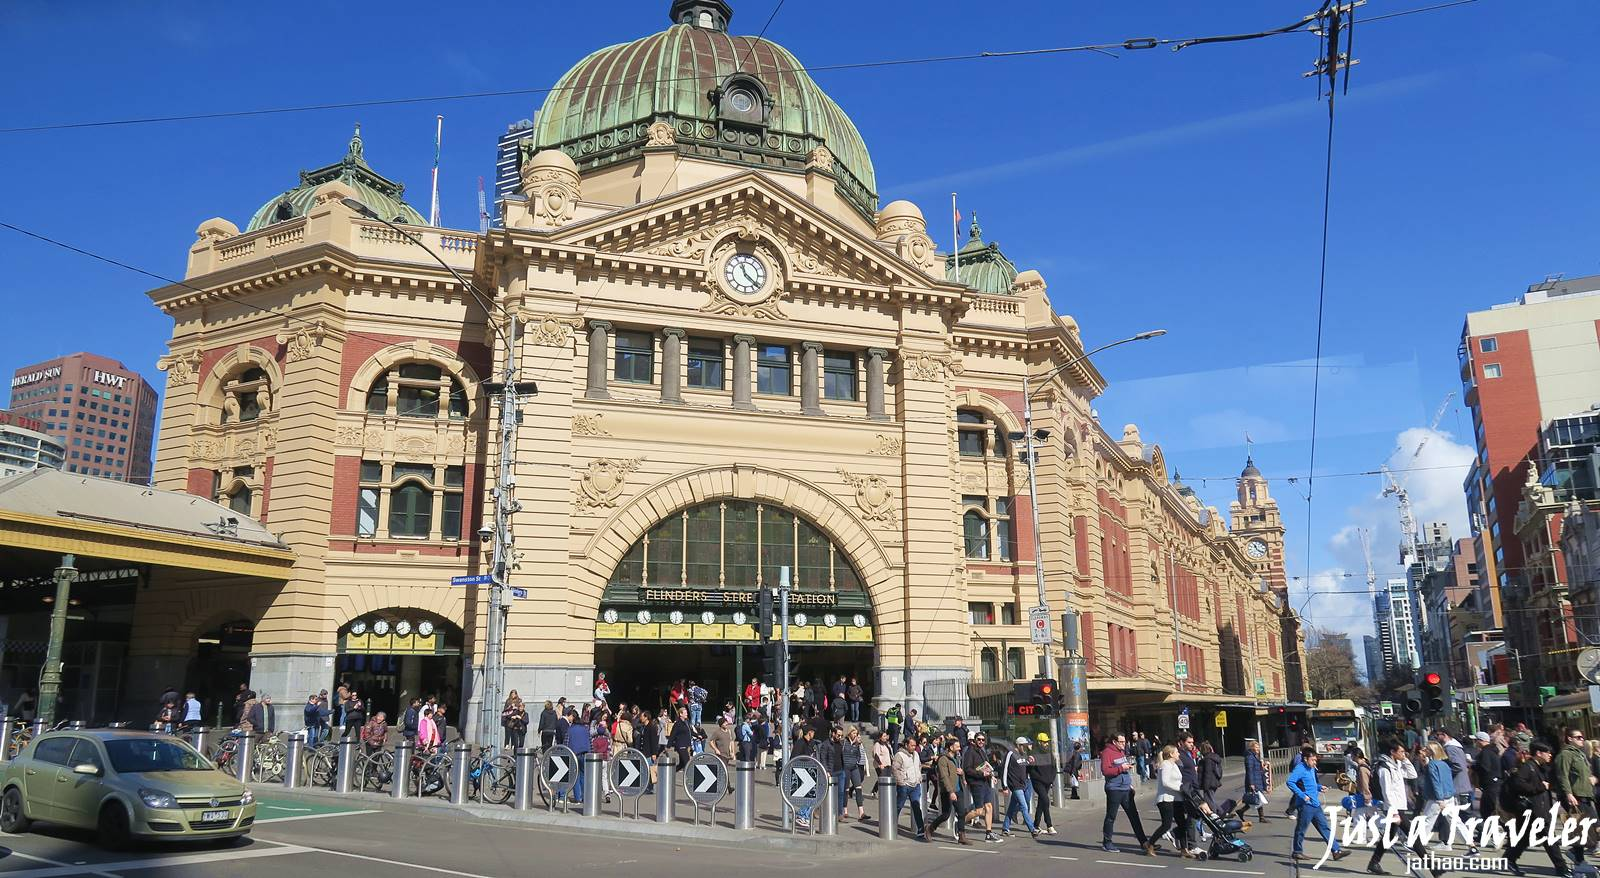 Melbourne-Flinders Street Railway Station-CBD-Attraction-Recommendation-Map-Itinerary-Tourism-Independent Travel-Travel Blog-Must visit-Must See